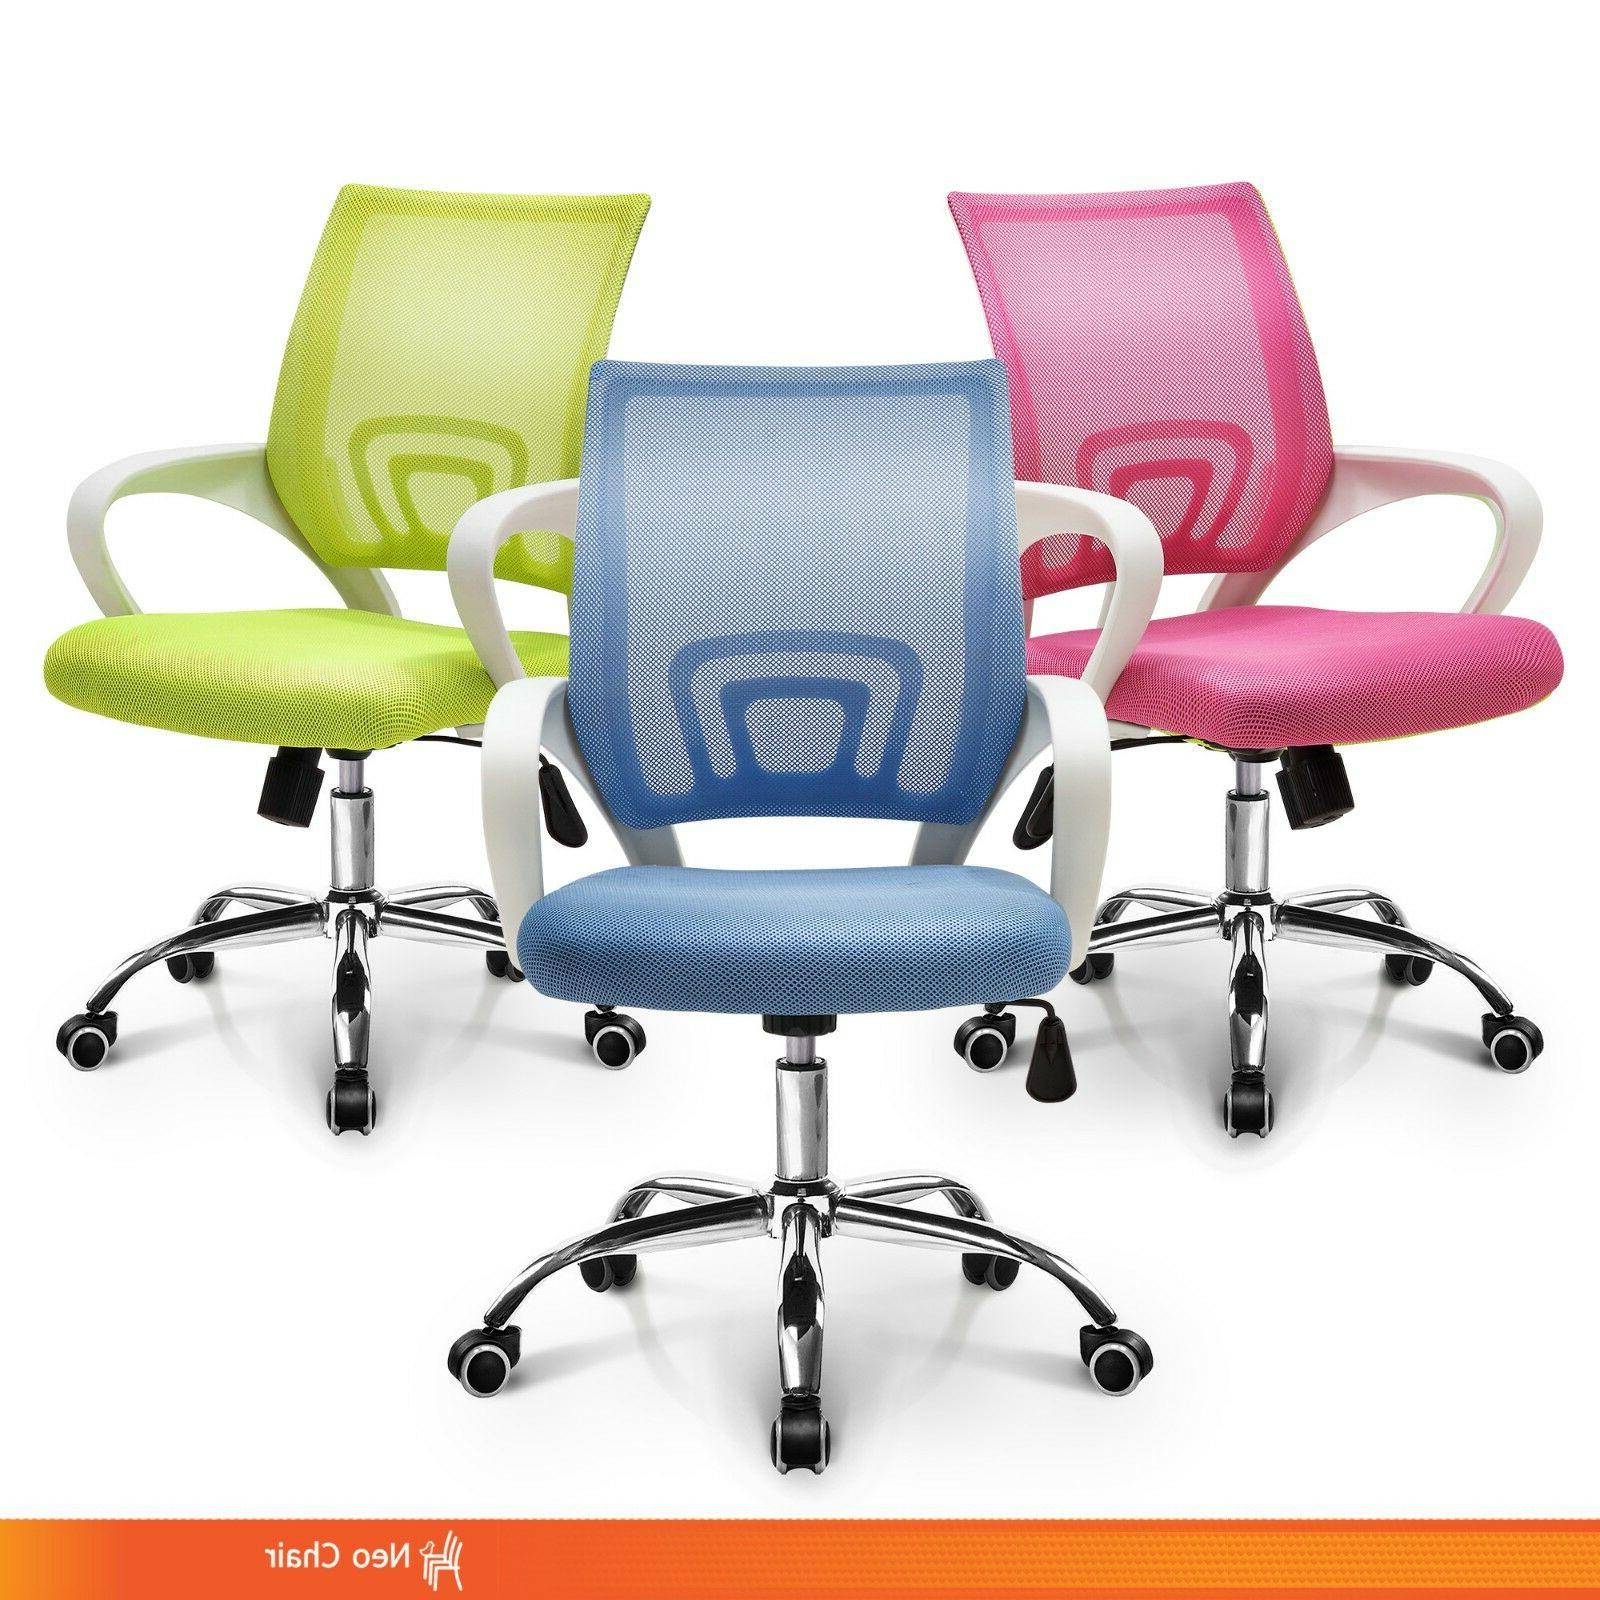 Fashionable Home Office Conference Room Mesh Desk Chair